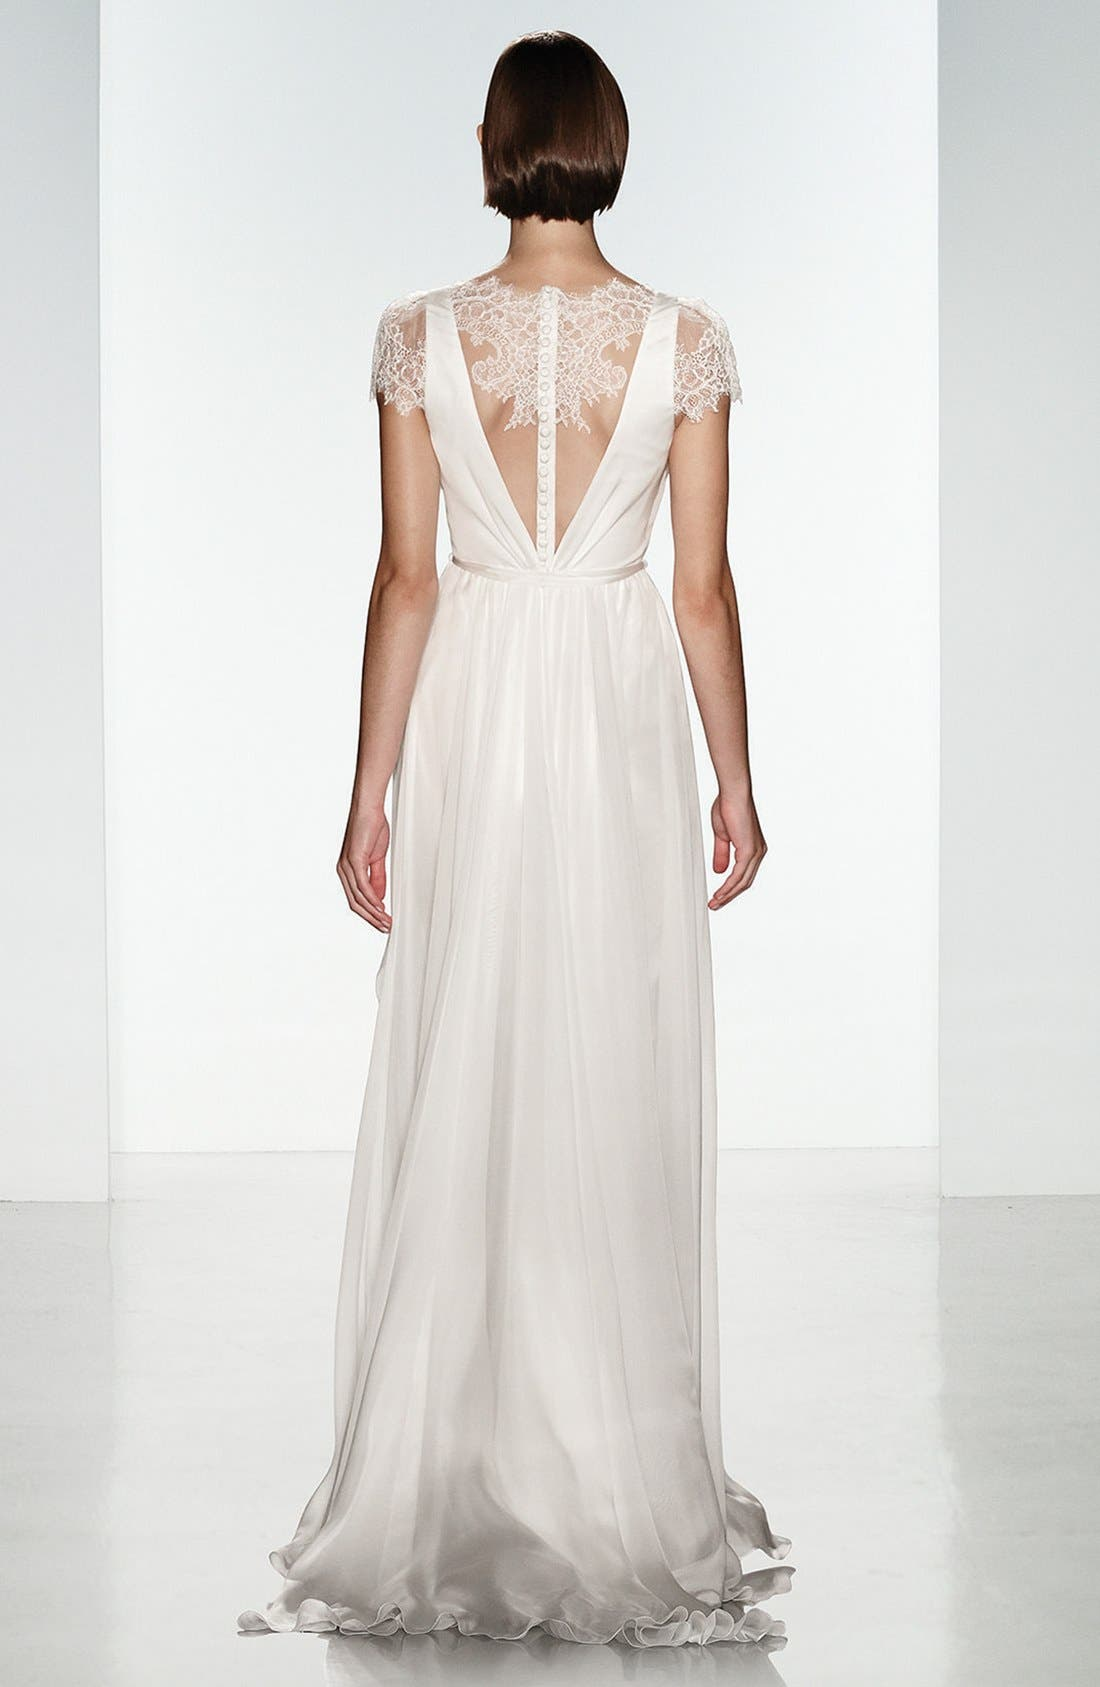 Lainee Silk Chiffon & Lace Cap Sleeve Gown,                             Alternate thumbnail 2, color,                             Ivory